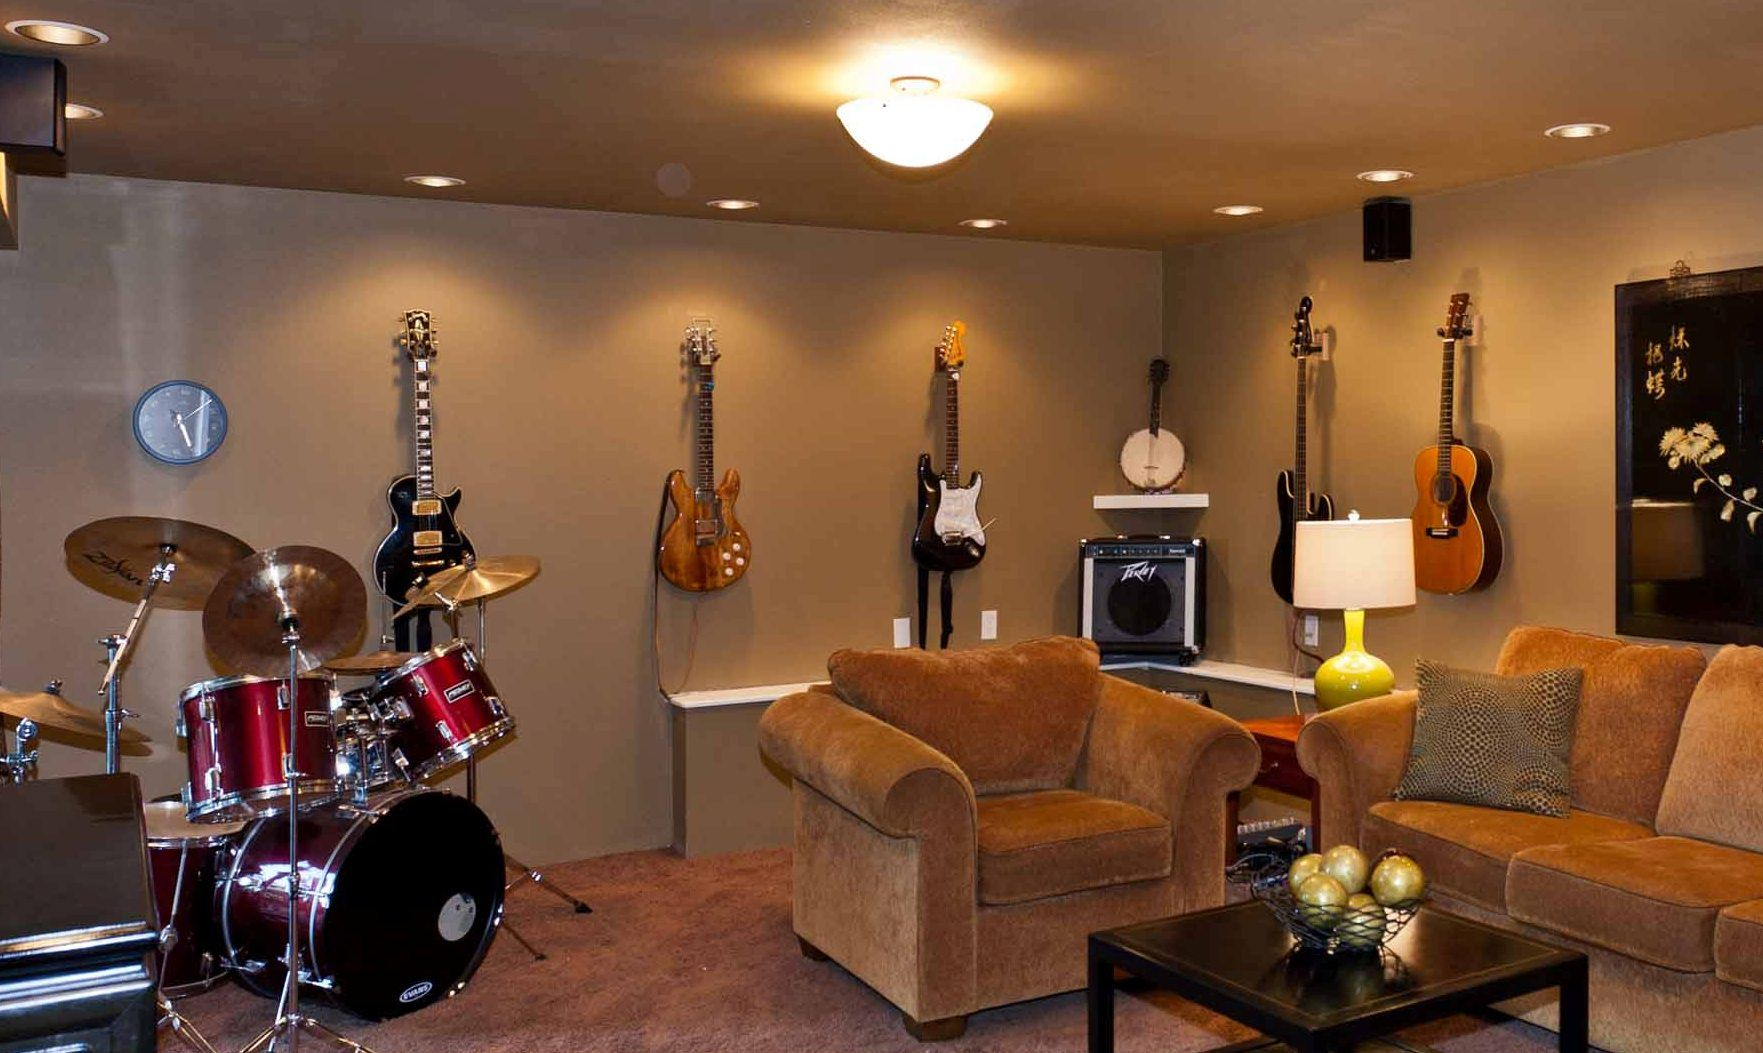 Music room music room pinterest room music studios for Room decorating ideas music